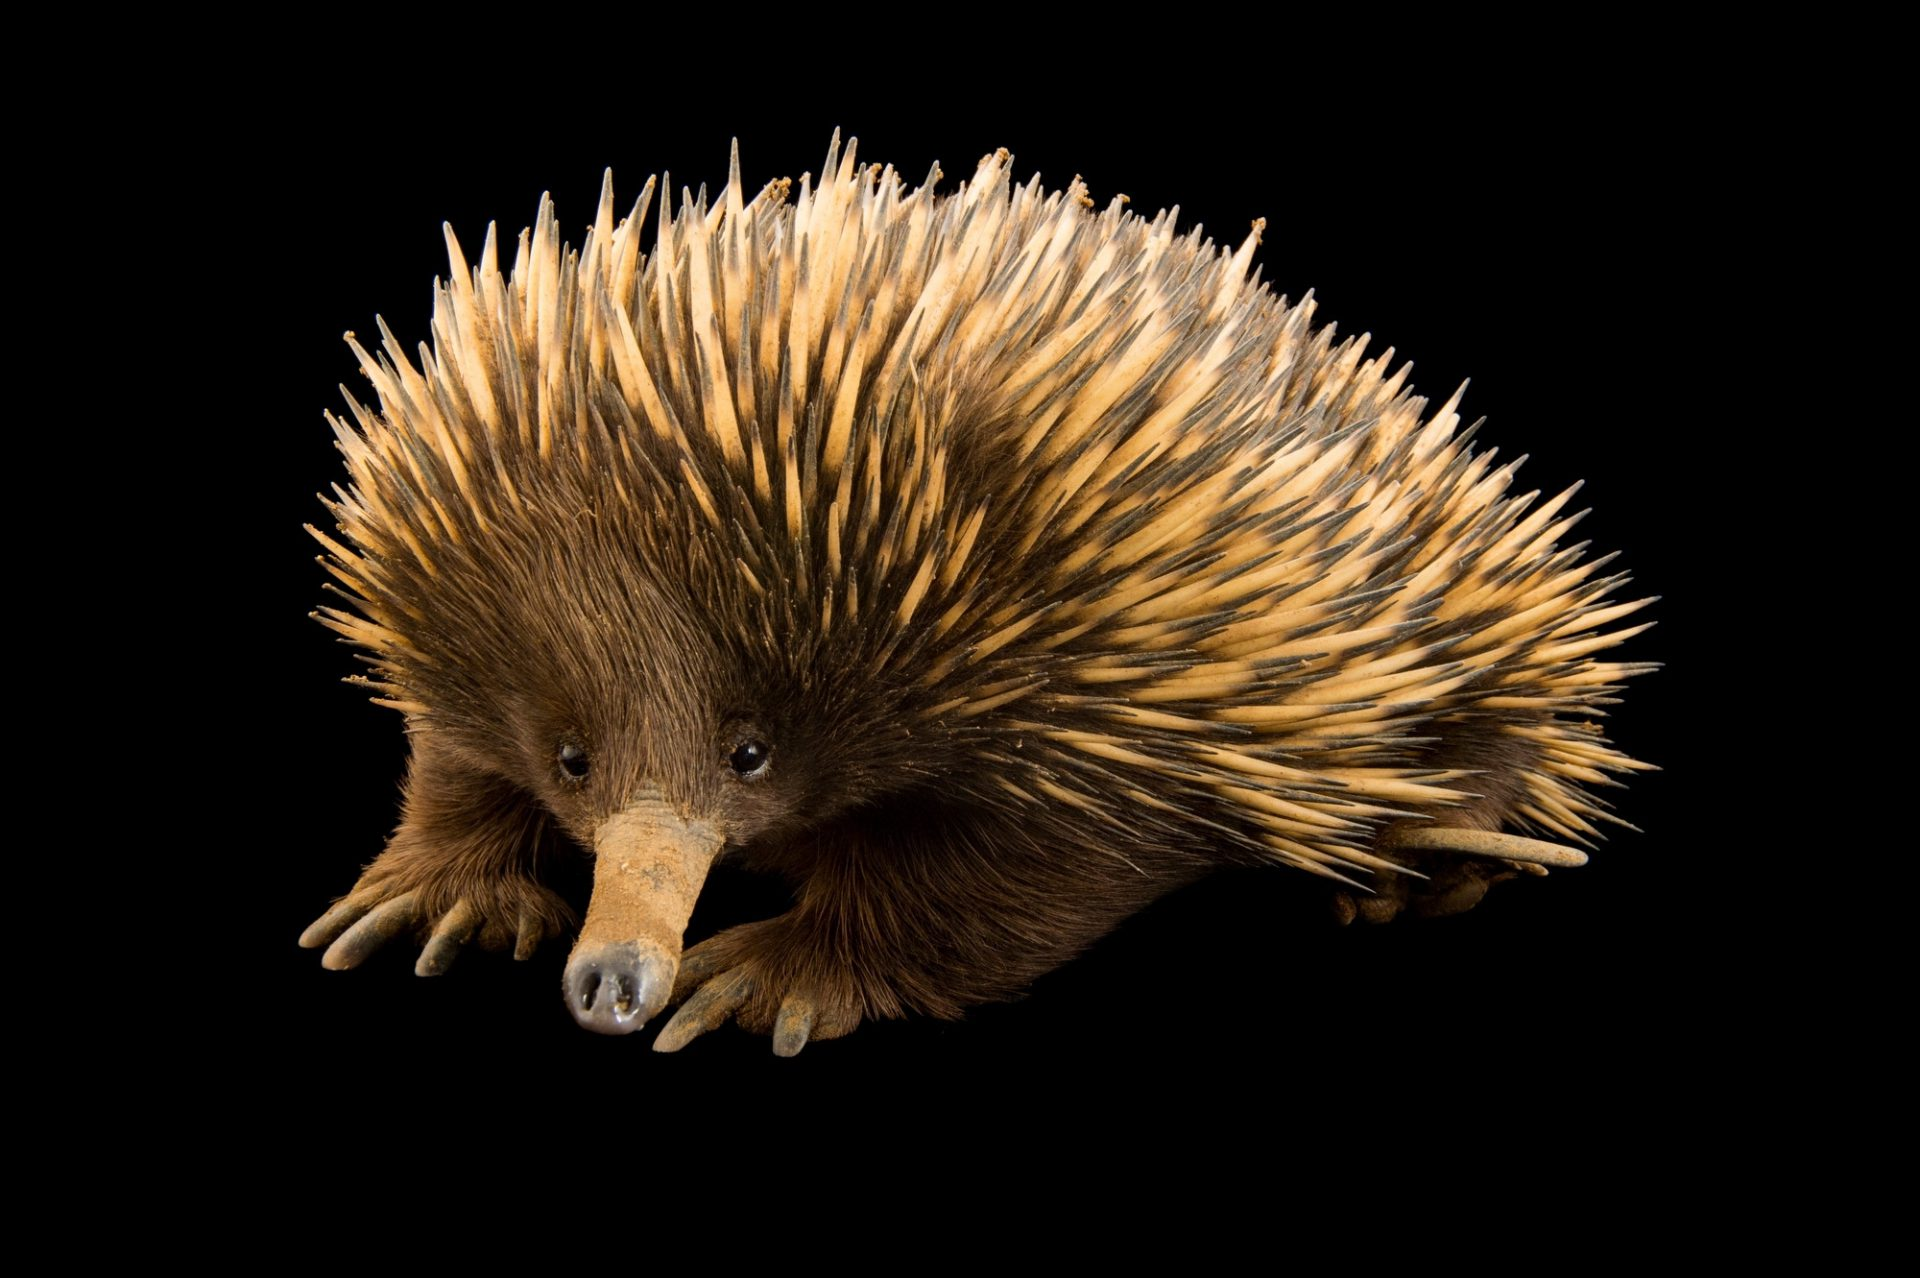 Picture of a Kangaroo Island echidna (Tachyglossus aculeatus multiaculeatus) at the LA Zoo.